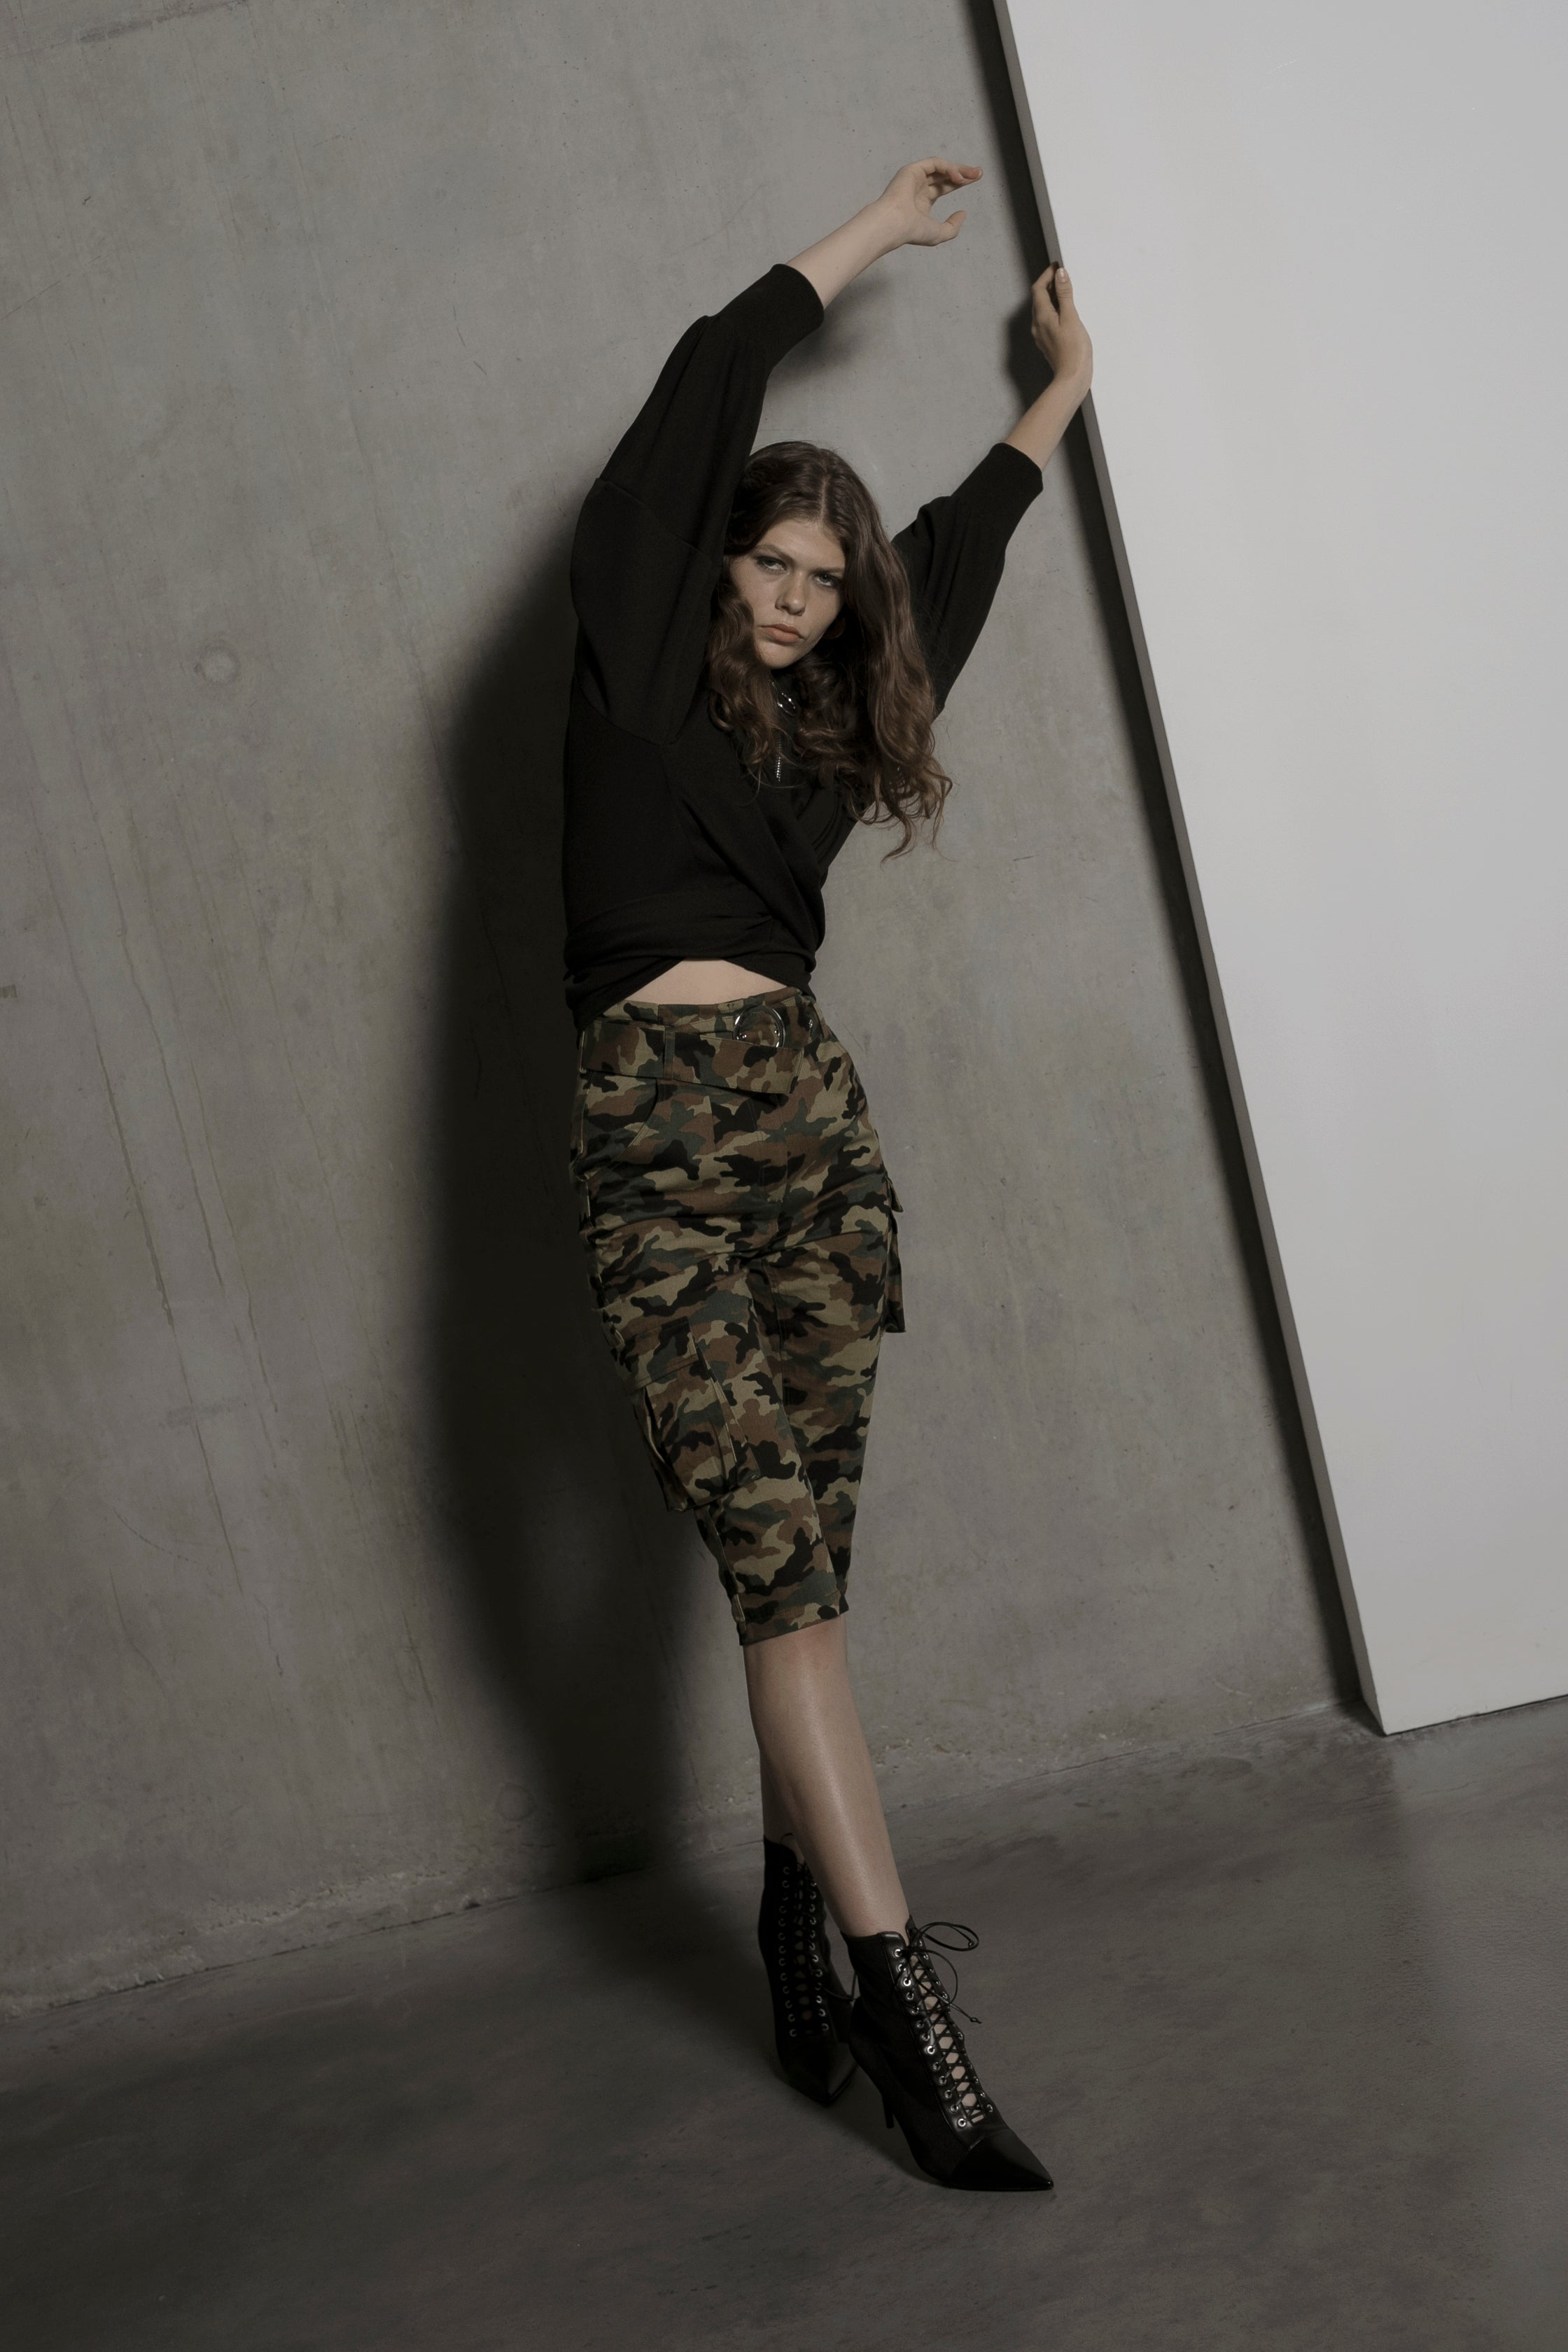 Ali military camouflage trousers